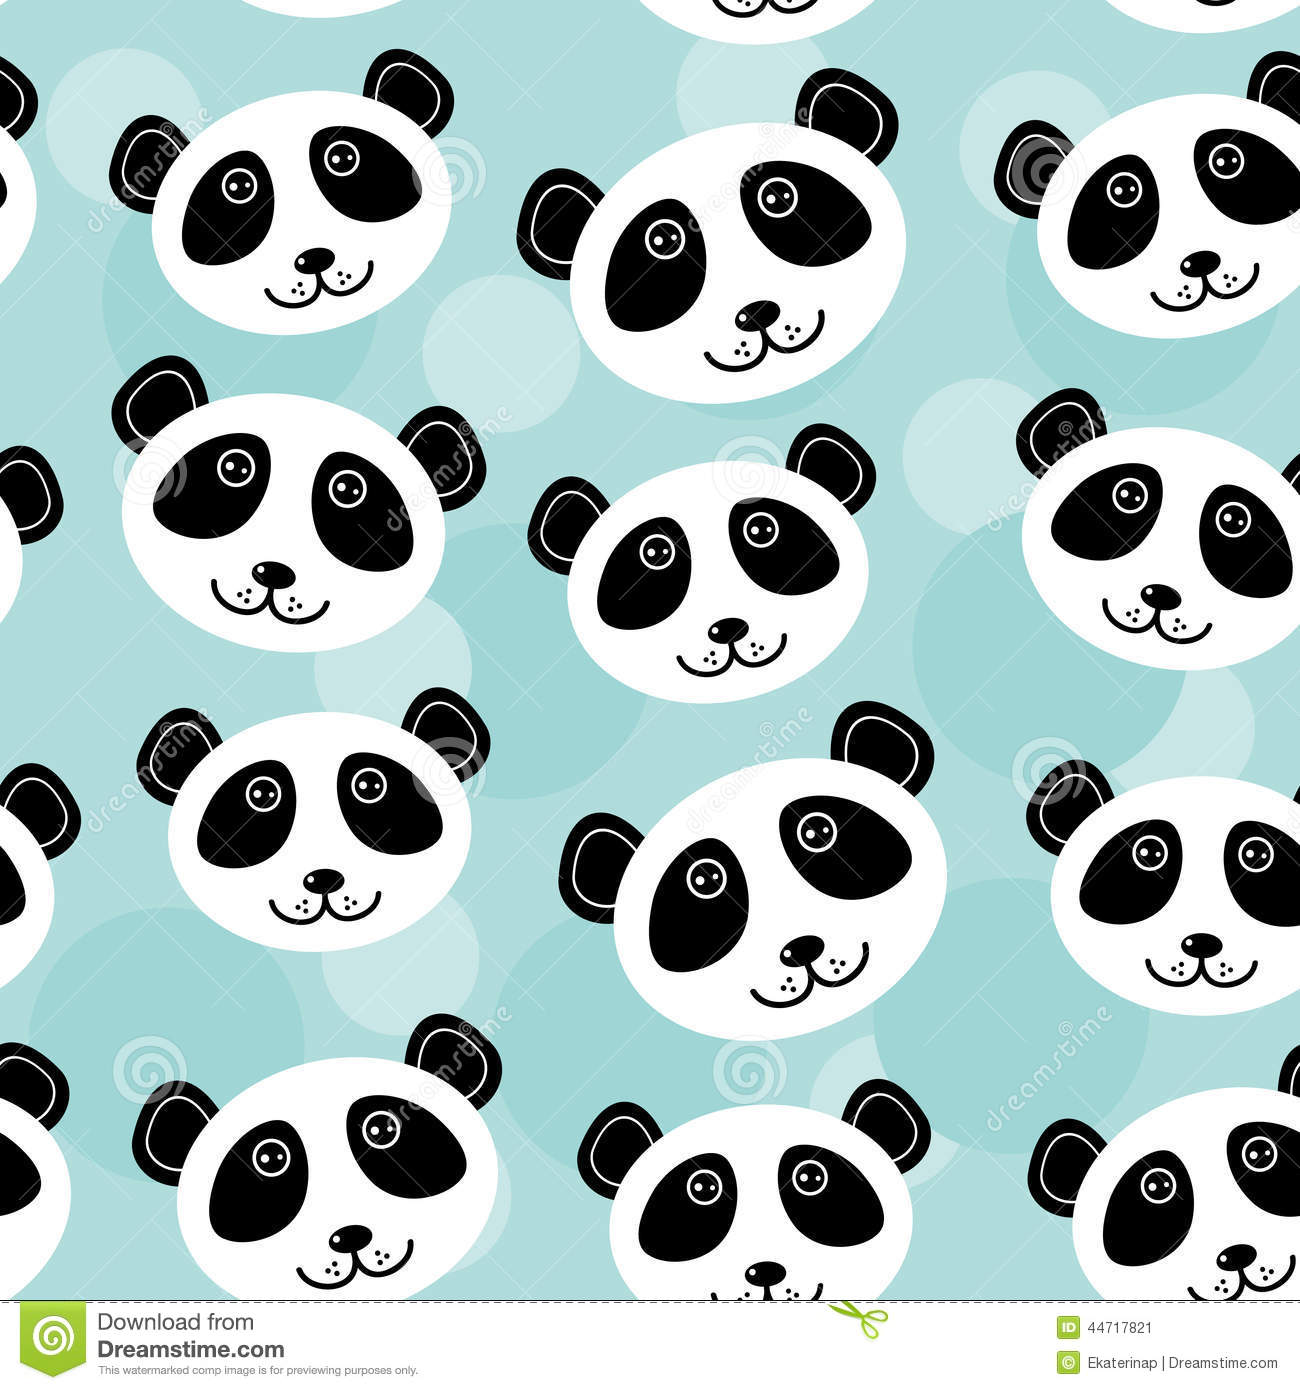 Panda Seamless Pattern With Funny Cute Animal Face On A